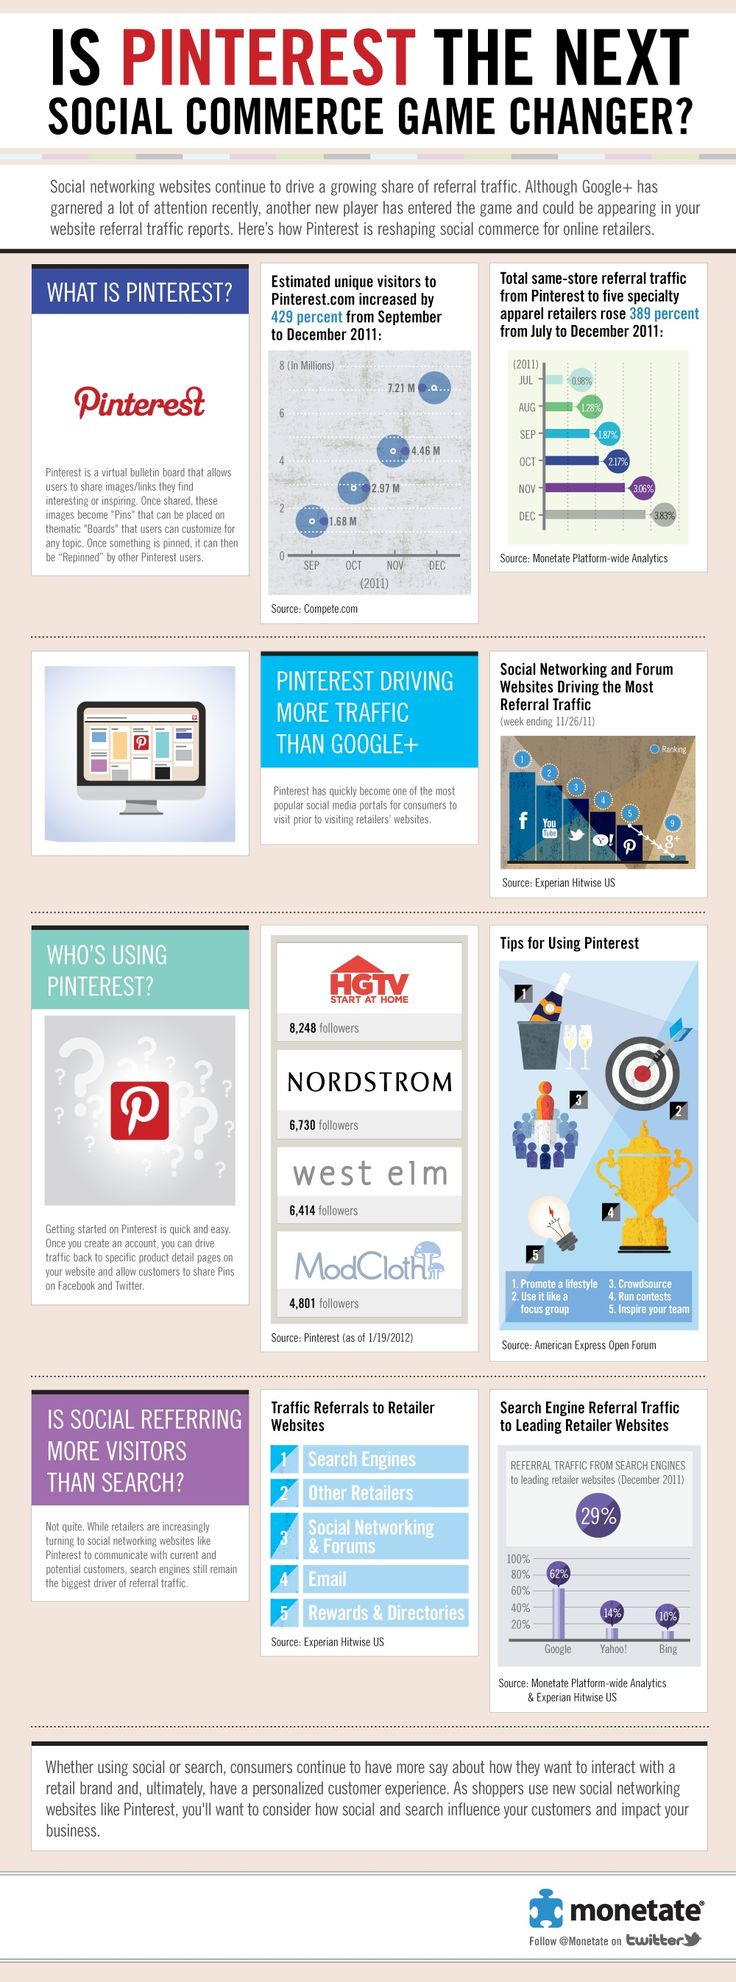 Is Pinterest the Next Social Commerce Game Changer? Yes, it's just a matter of time.